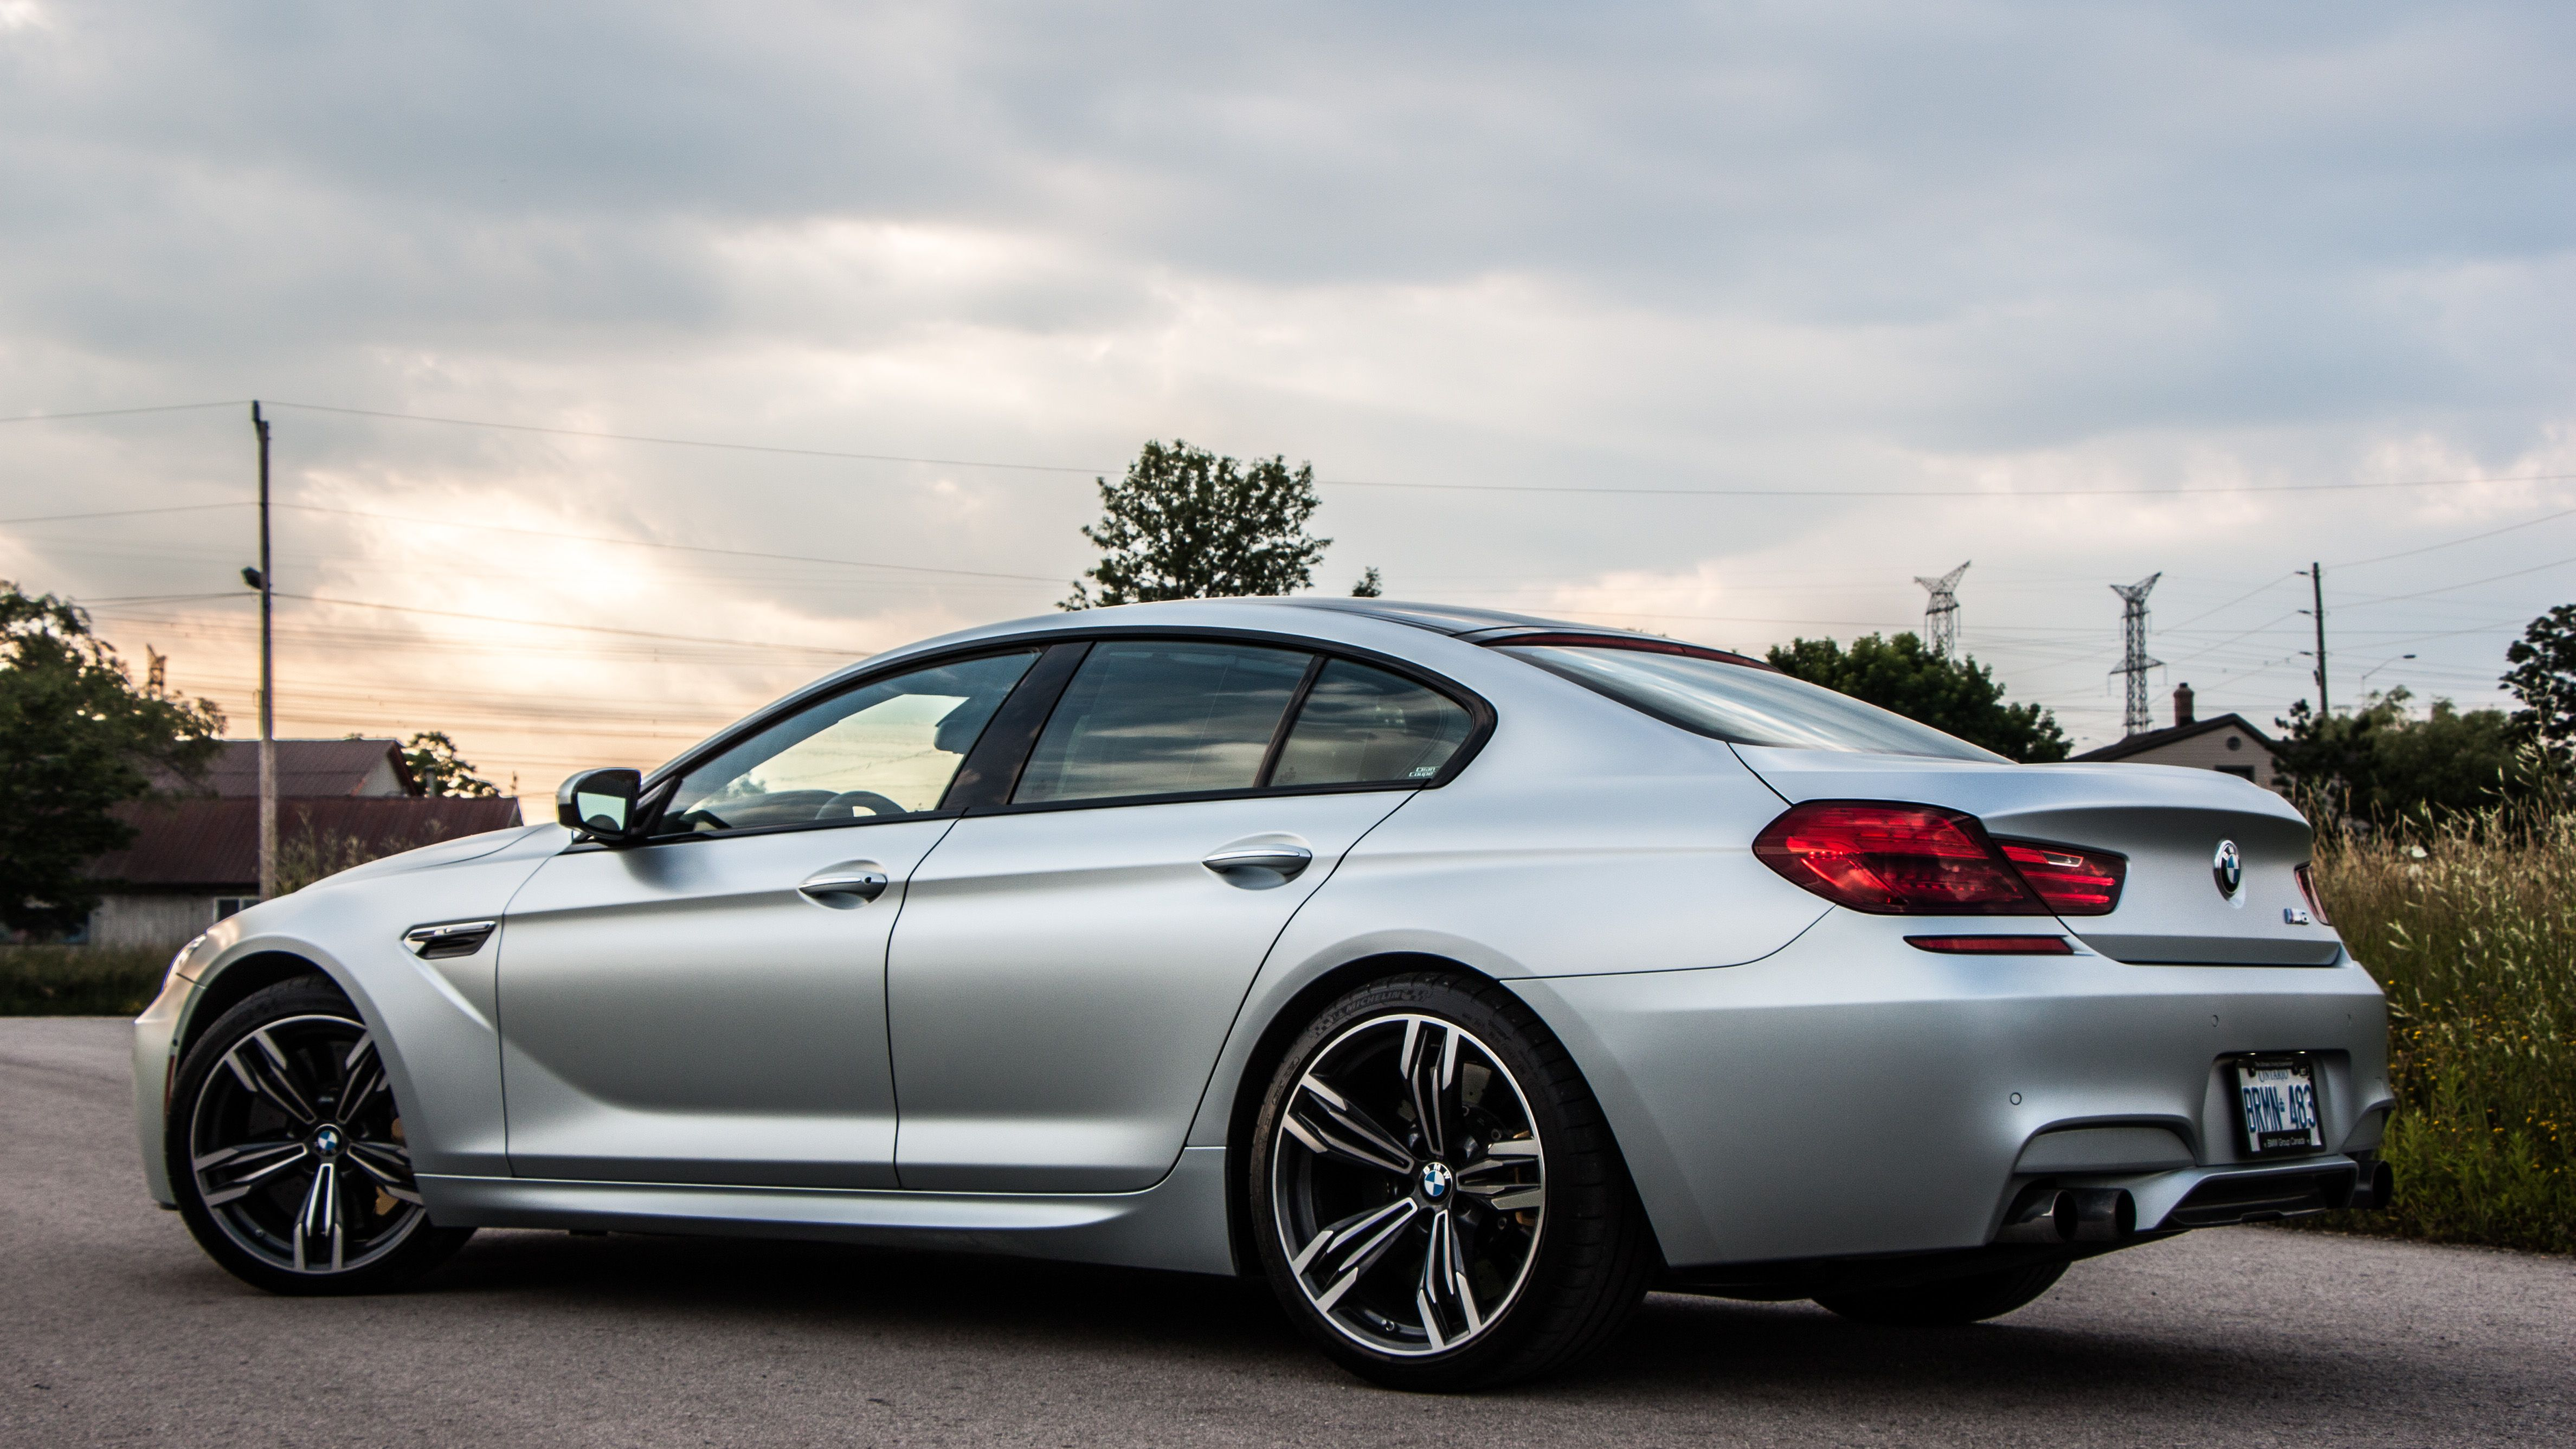 2015 Bmw M6 Gran Coupe Information And Photos Zombiedrive Bmw M6 Bmw Gran Coupe